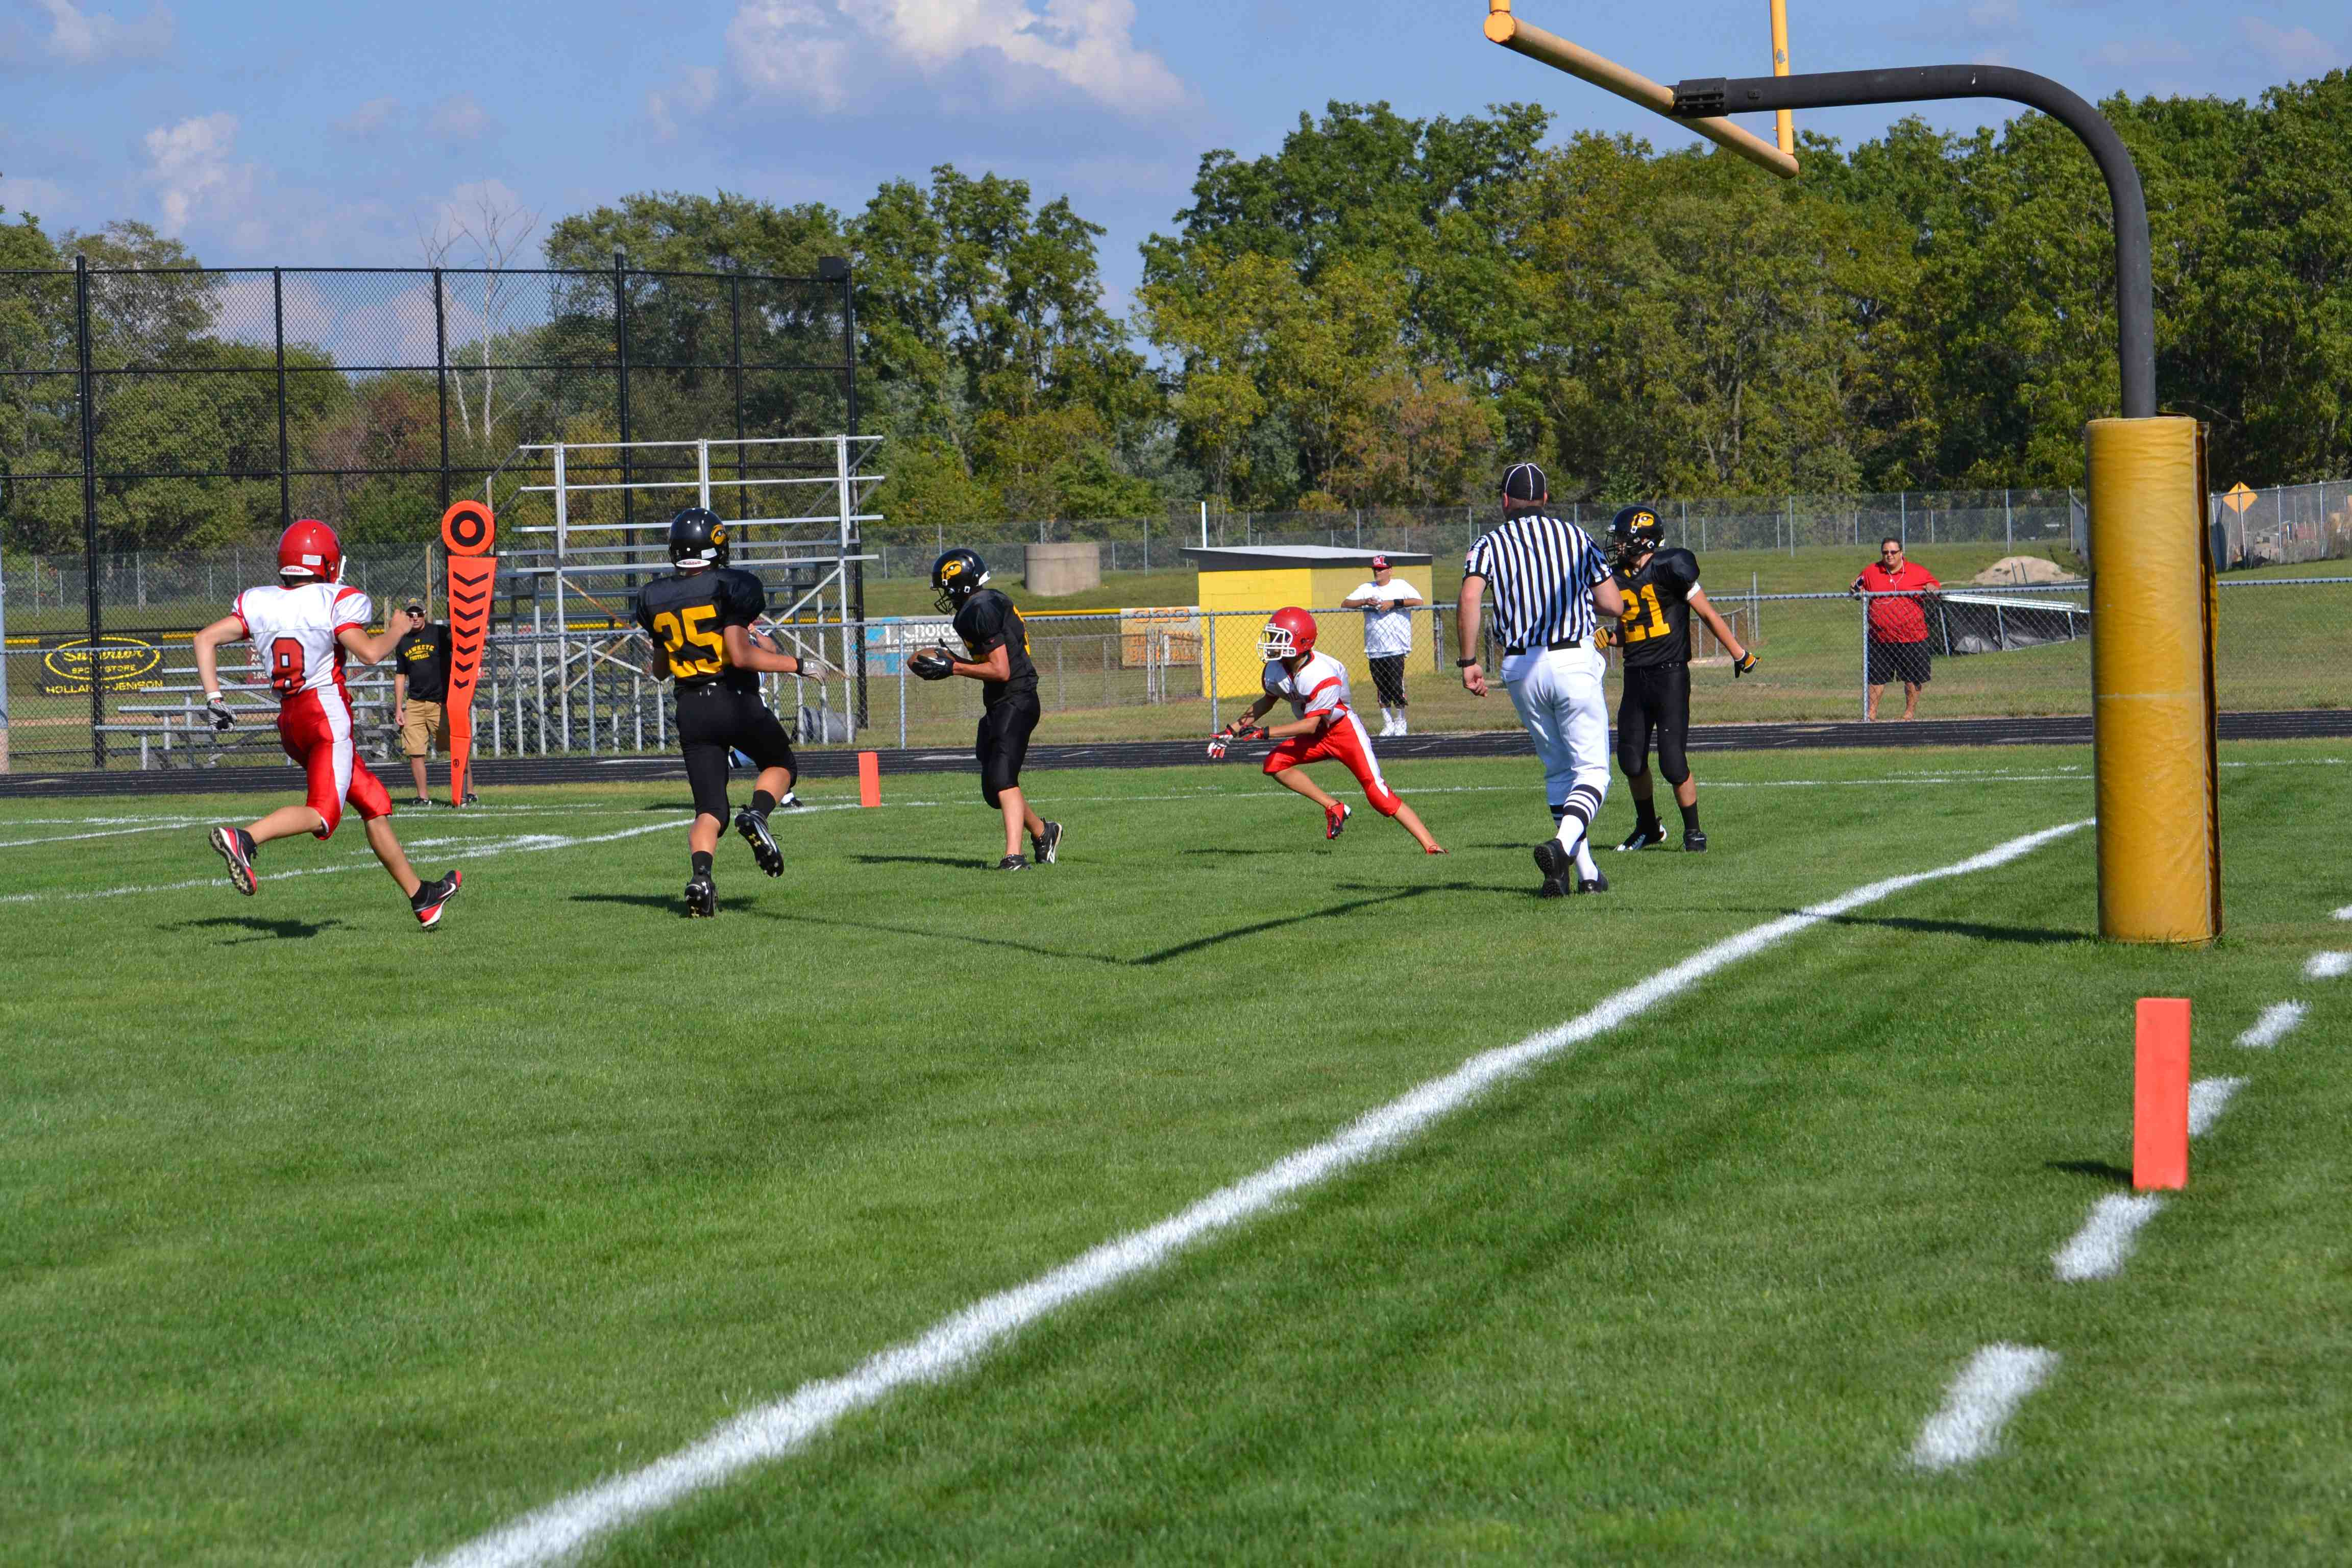 Ryan Tolsma grabs a ball in the endzone for the Hawkeyes.